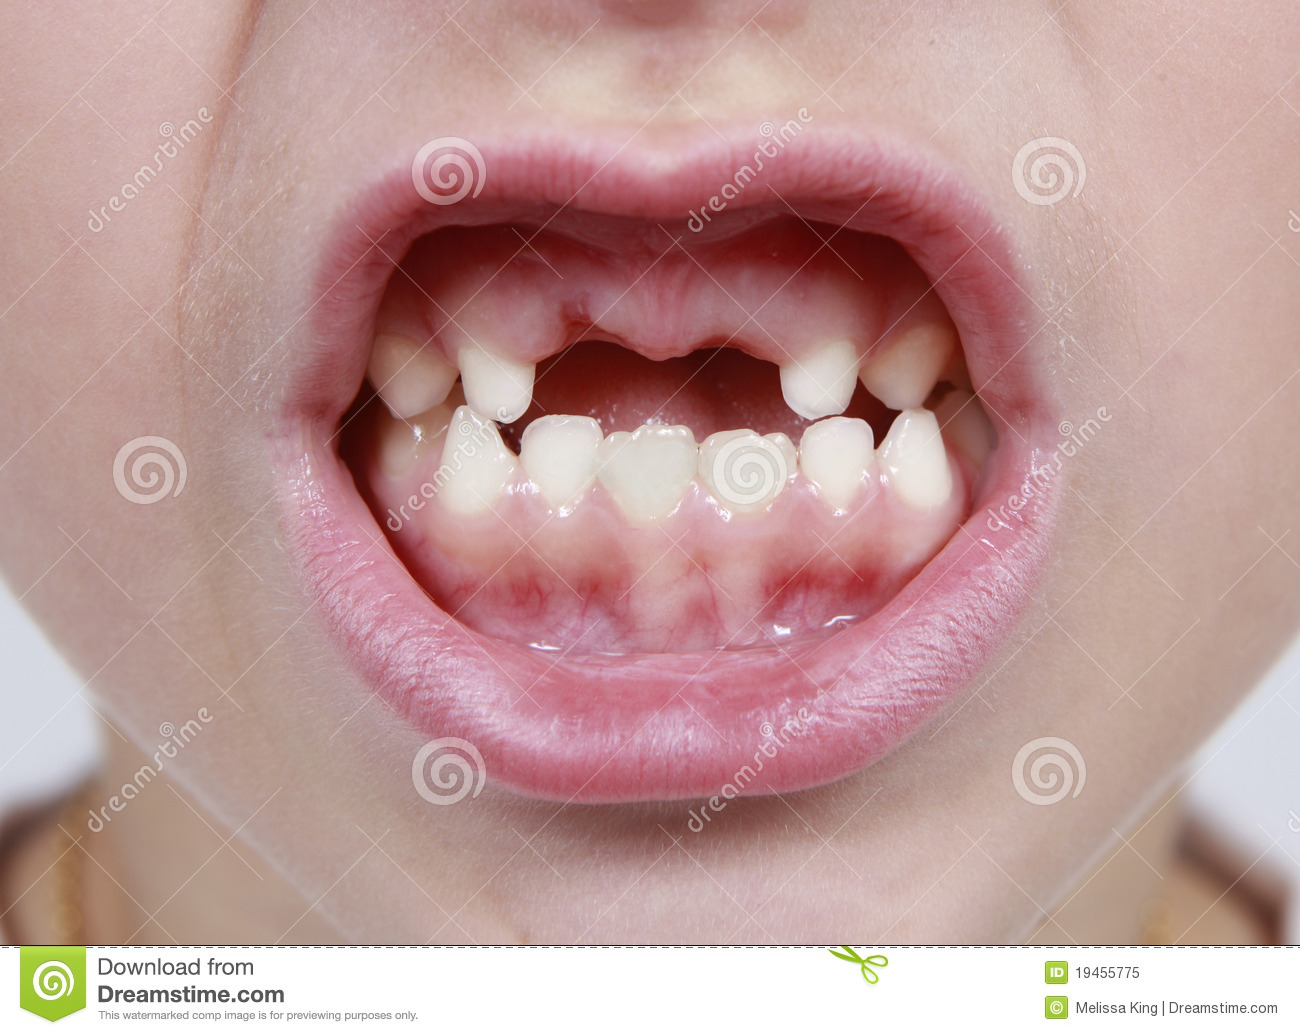 Mouth Missing Teeth Royalty Free Stock Photo - Image: 19455775